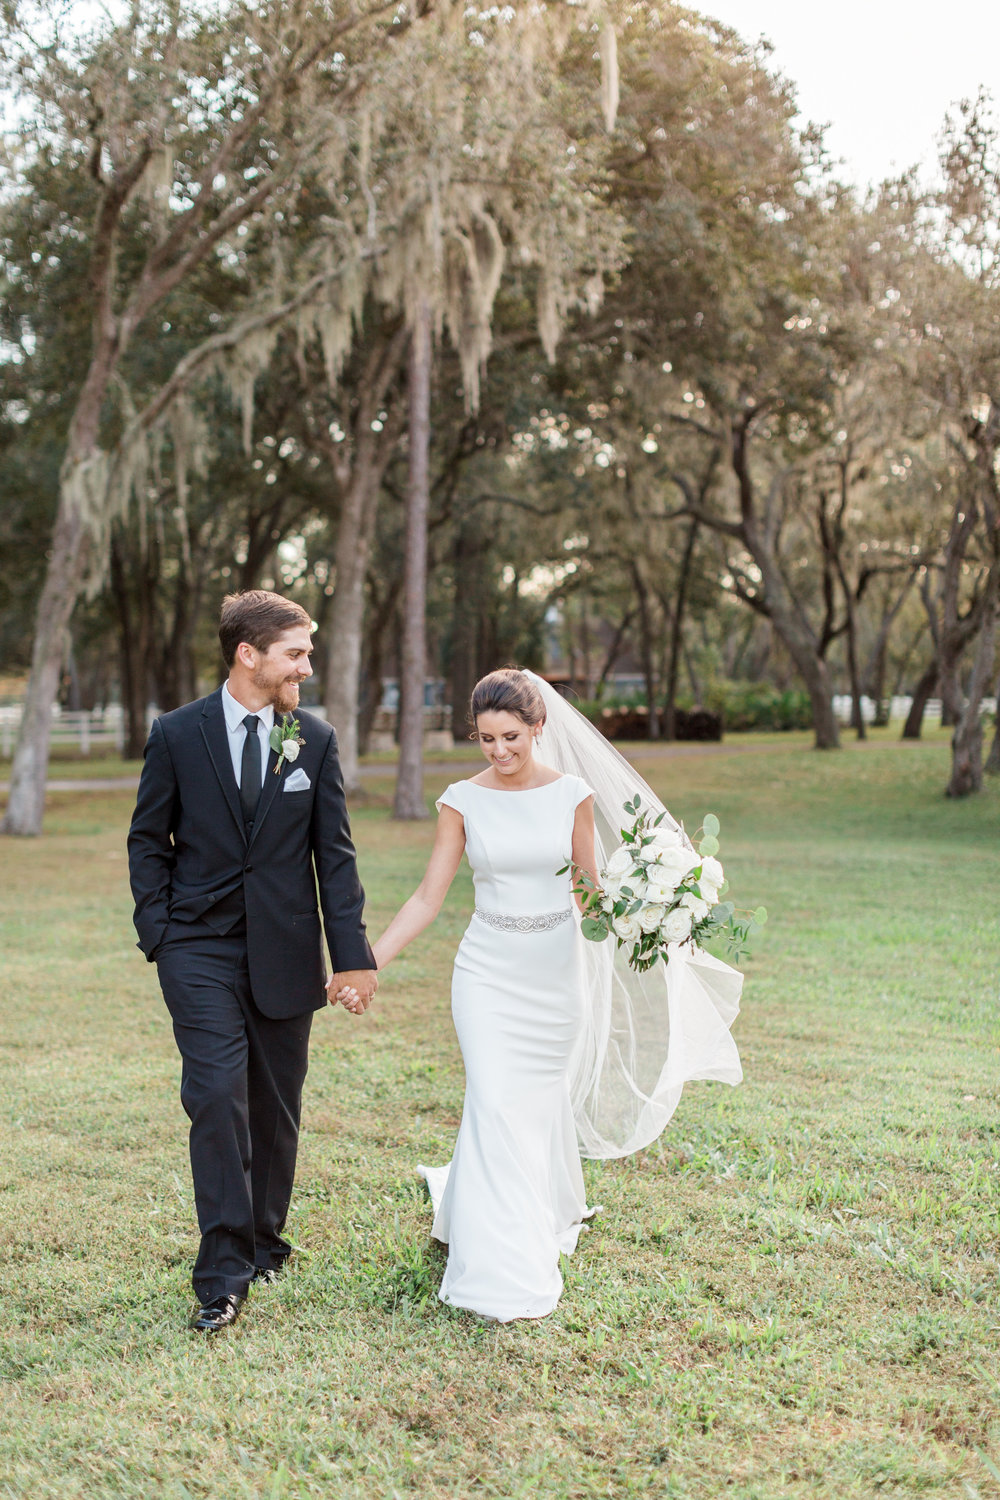 Monzy & Kenny's Wedding | Lauren Galloway Photography-579.jpg